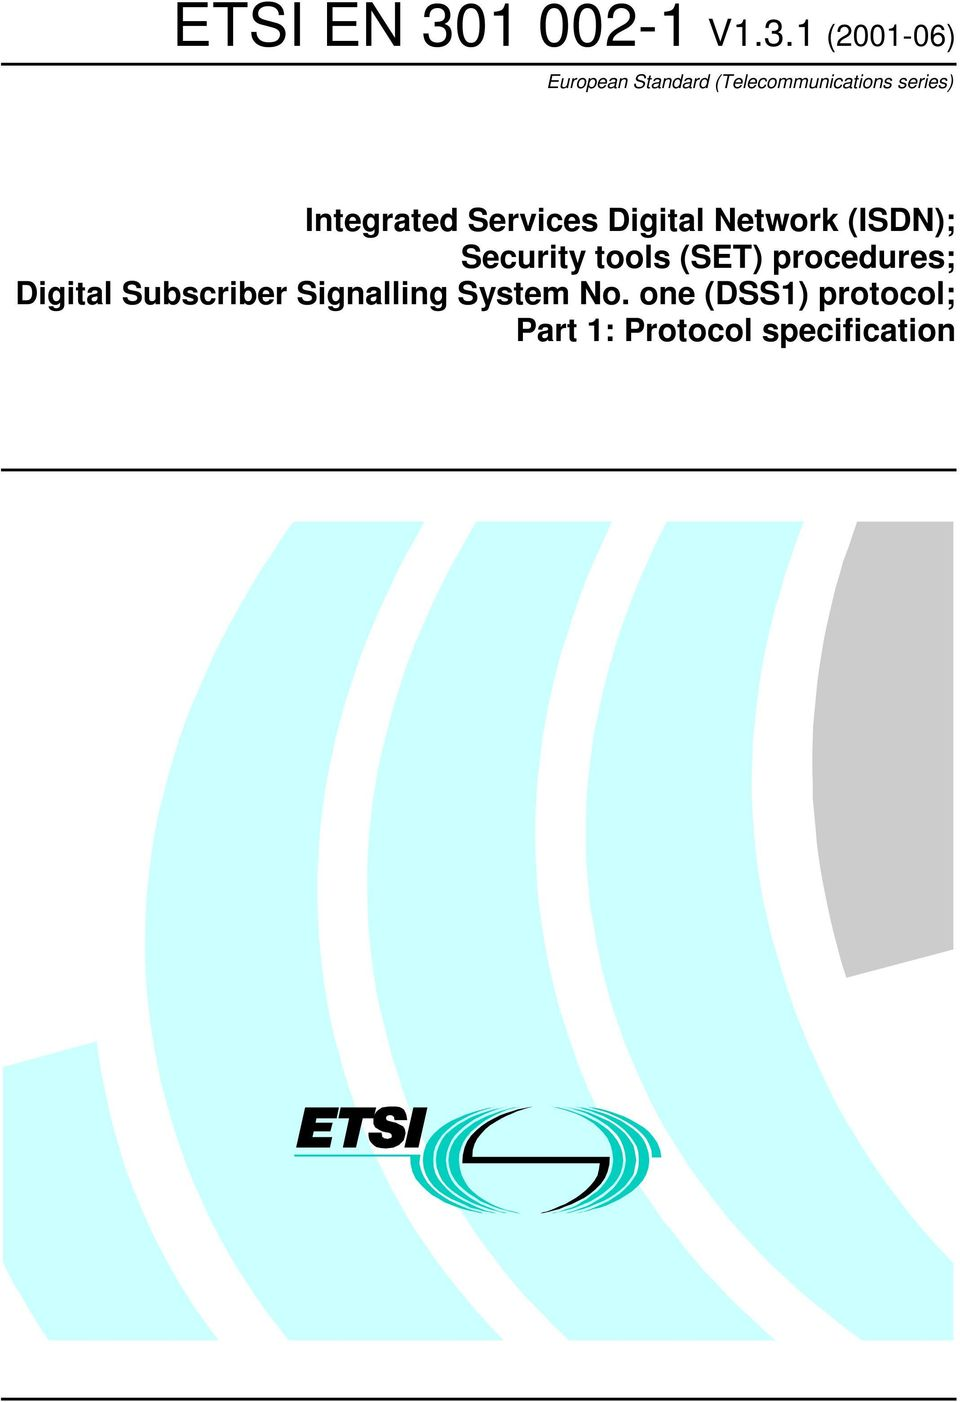 Network (ISDN); Security tools (SET) procedures; Digital